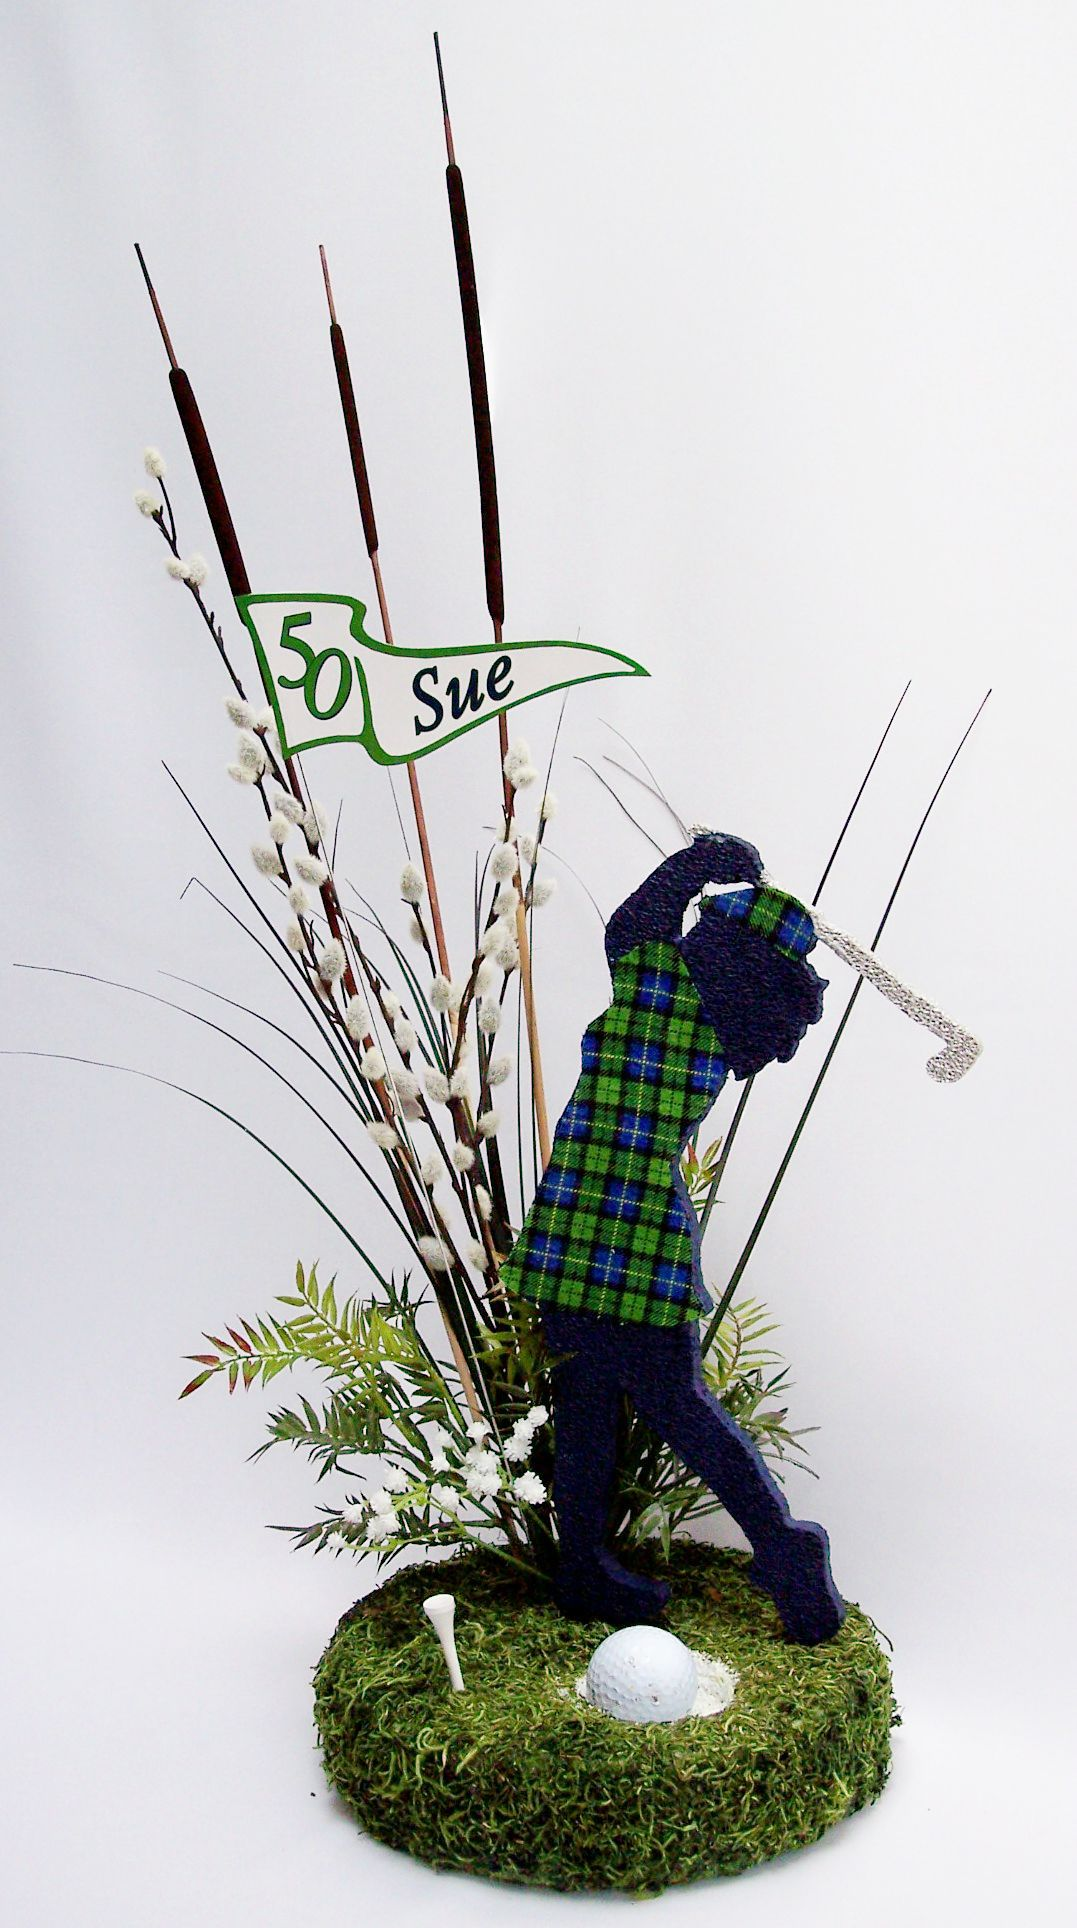 woman-golfer-tartan-plaid2 | Ideas for the House | Pinterest ... on golf decorations, band party ideas, finance party ideas, jiu jitsu party ideas, golf invitations, world travel party ideas, traveling party ideas, hiking party ideas, automotive party ideas, spades party ideas, ffa party ideas, t ball party ideas, fifa party ideas, maze party ideas, giants baseball party ideas, 100 year party ideas, ultimate party ideas, honeymoon party ideas, inspirational party ideas, donkey kong party ideas,